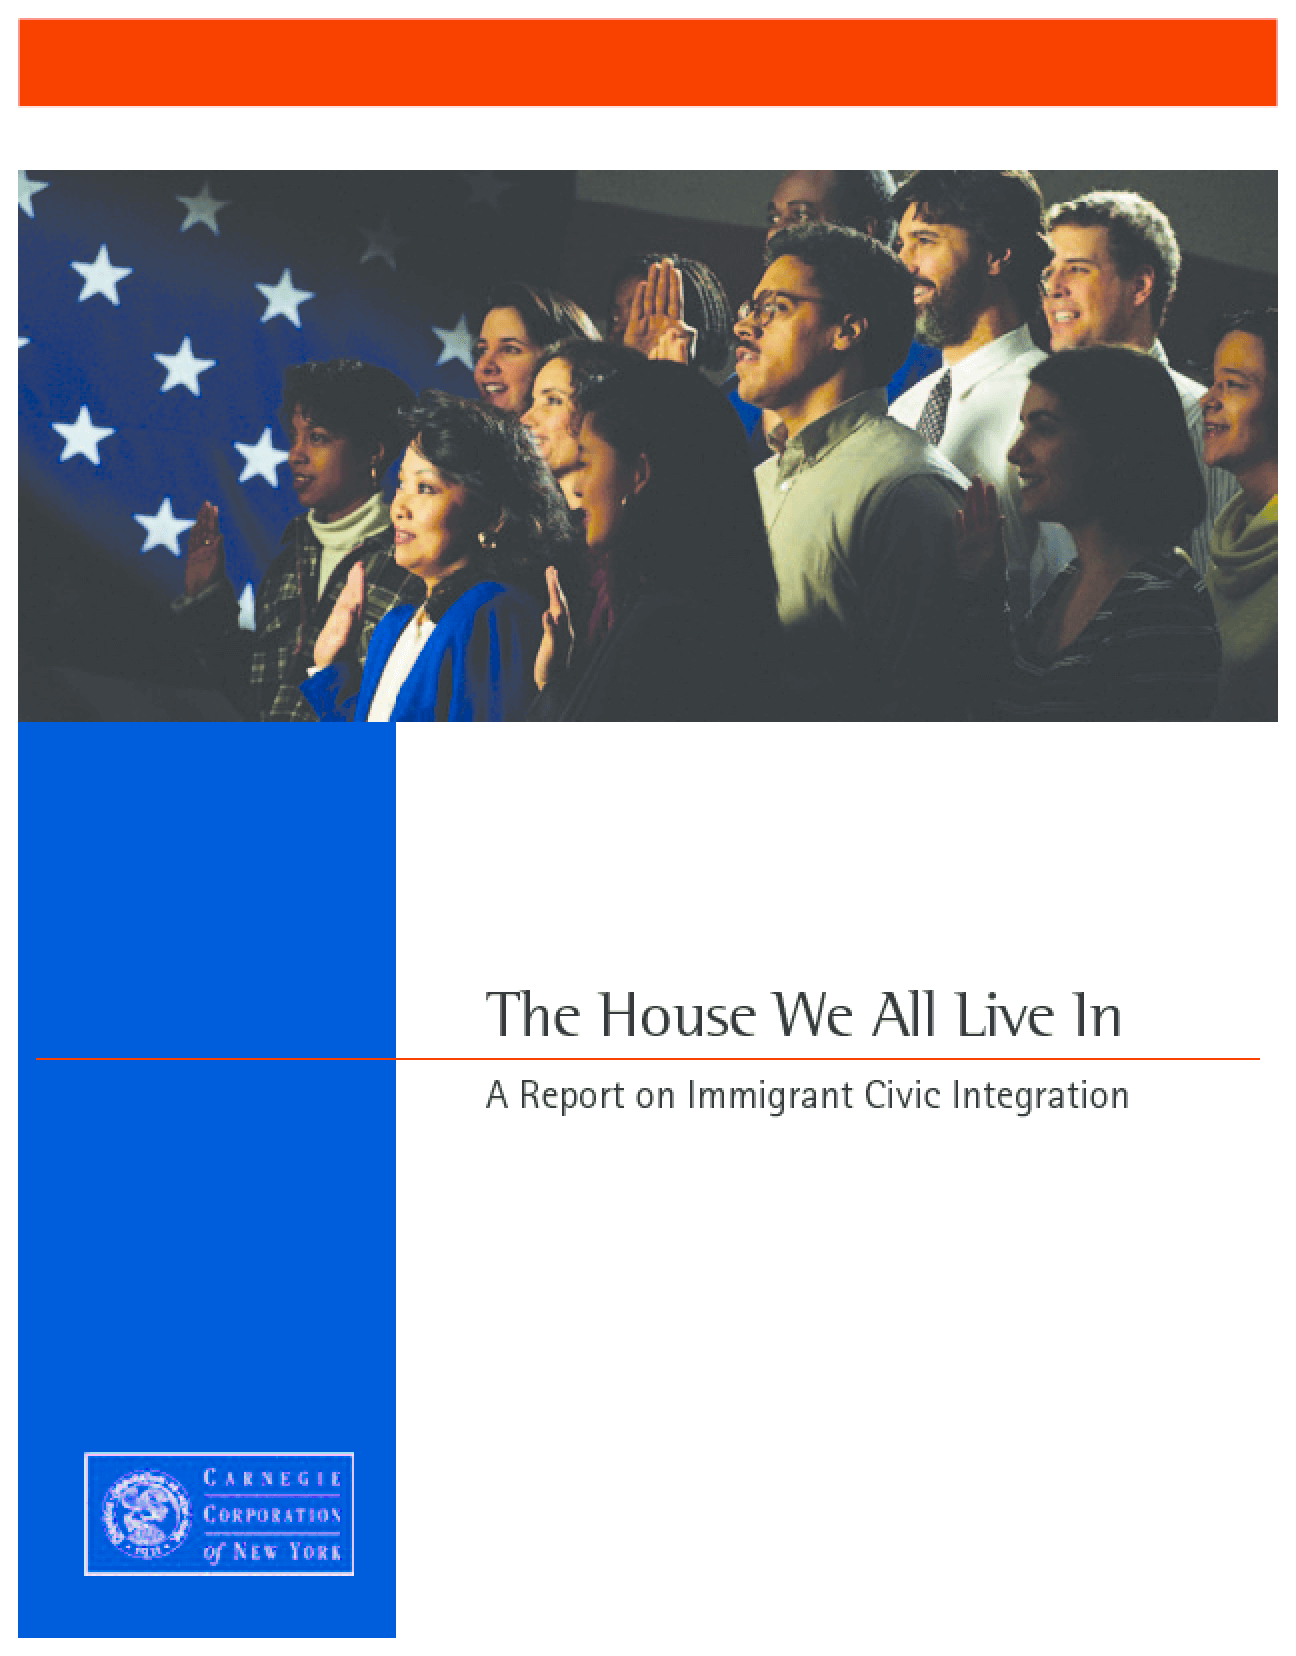 The House We All Live In: A Report On Immigrant Civic Integration